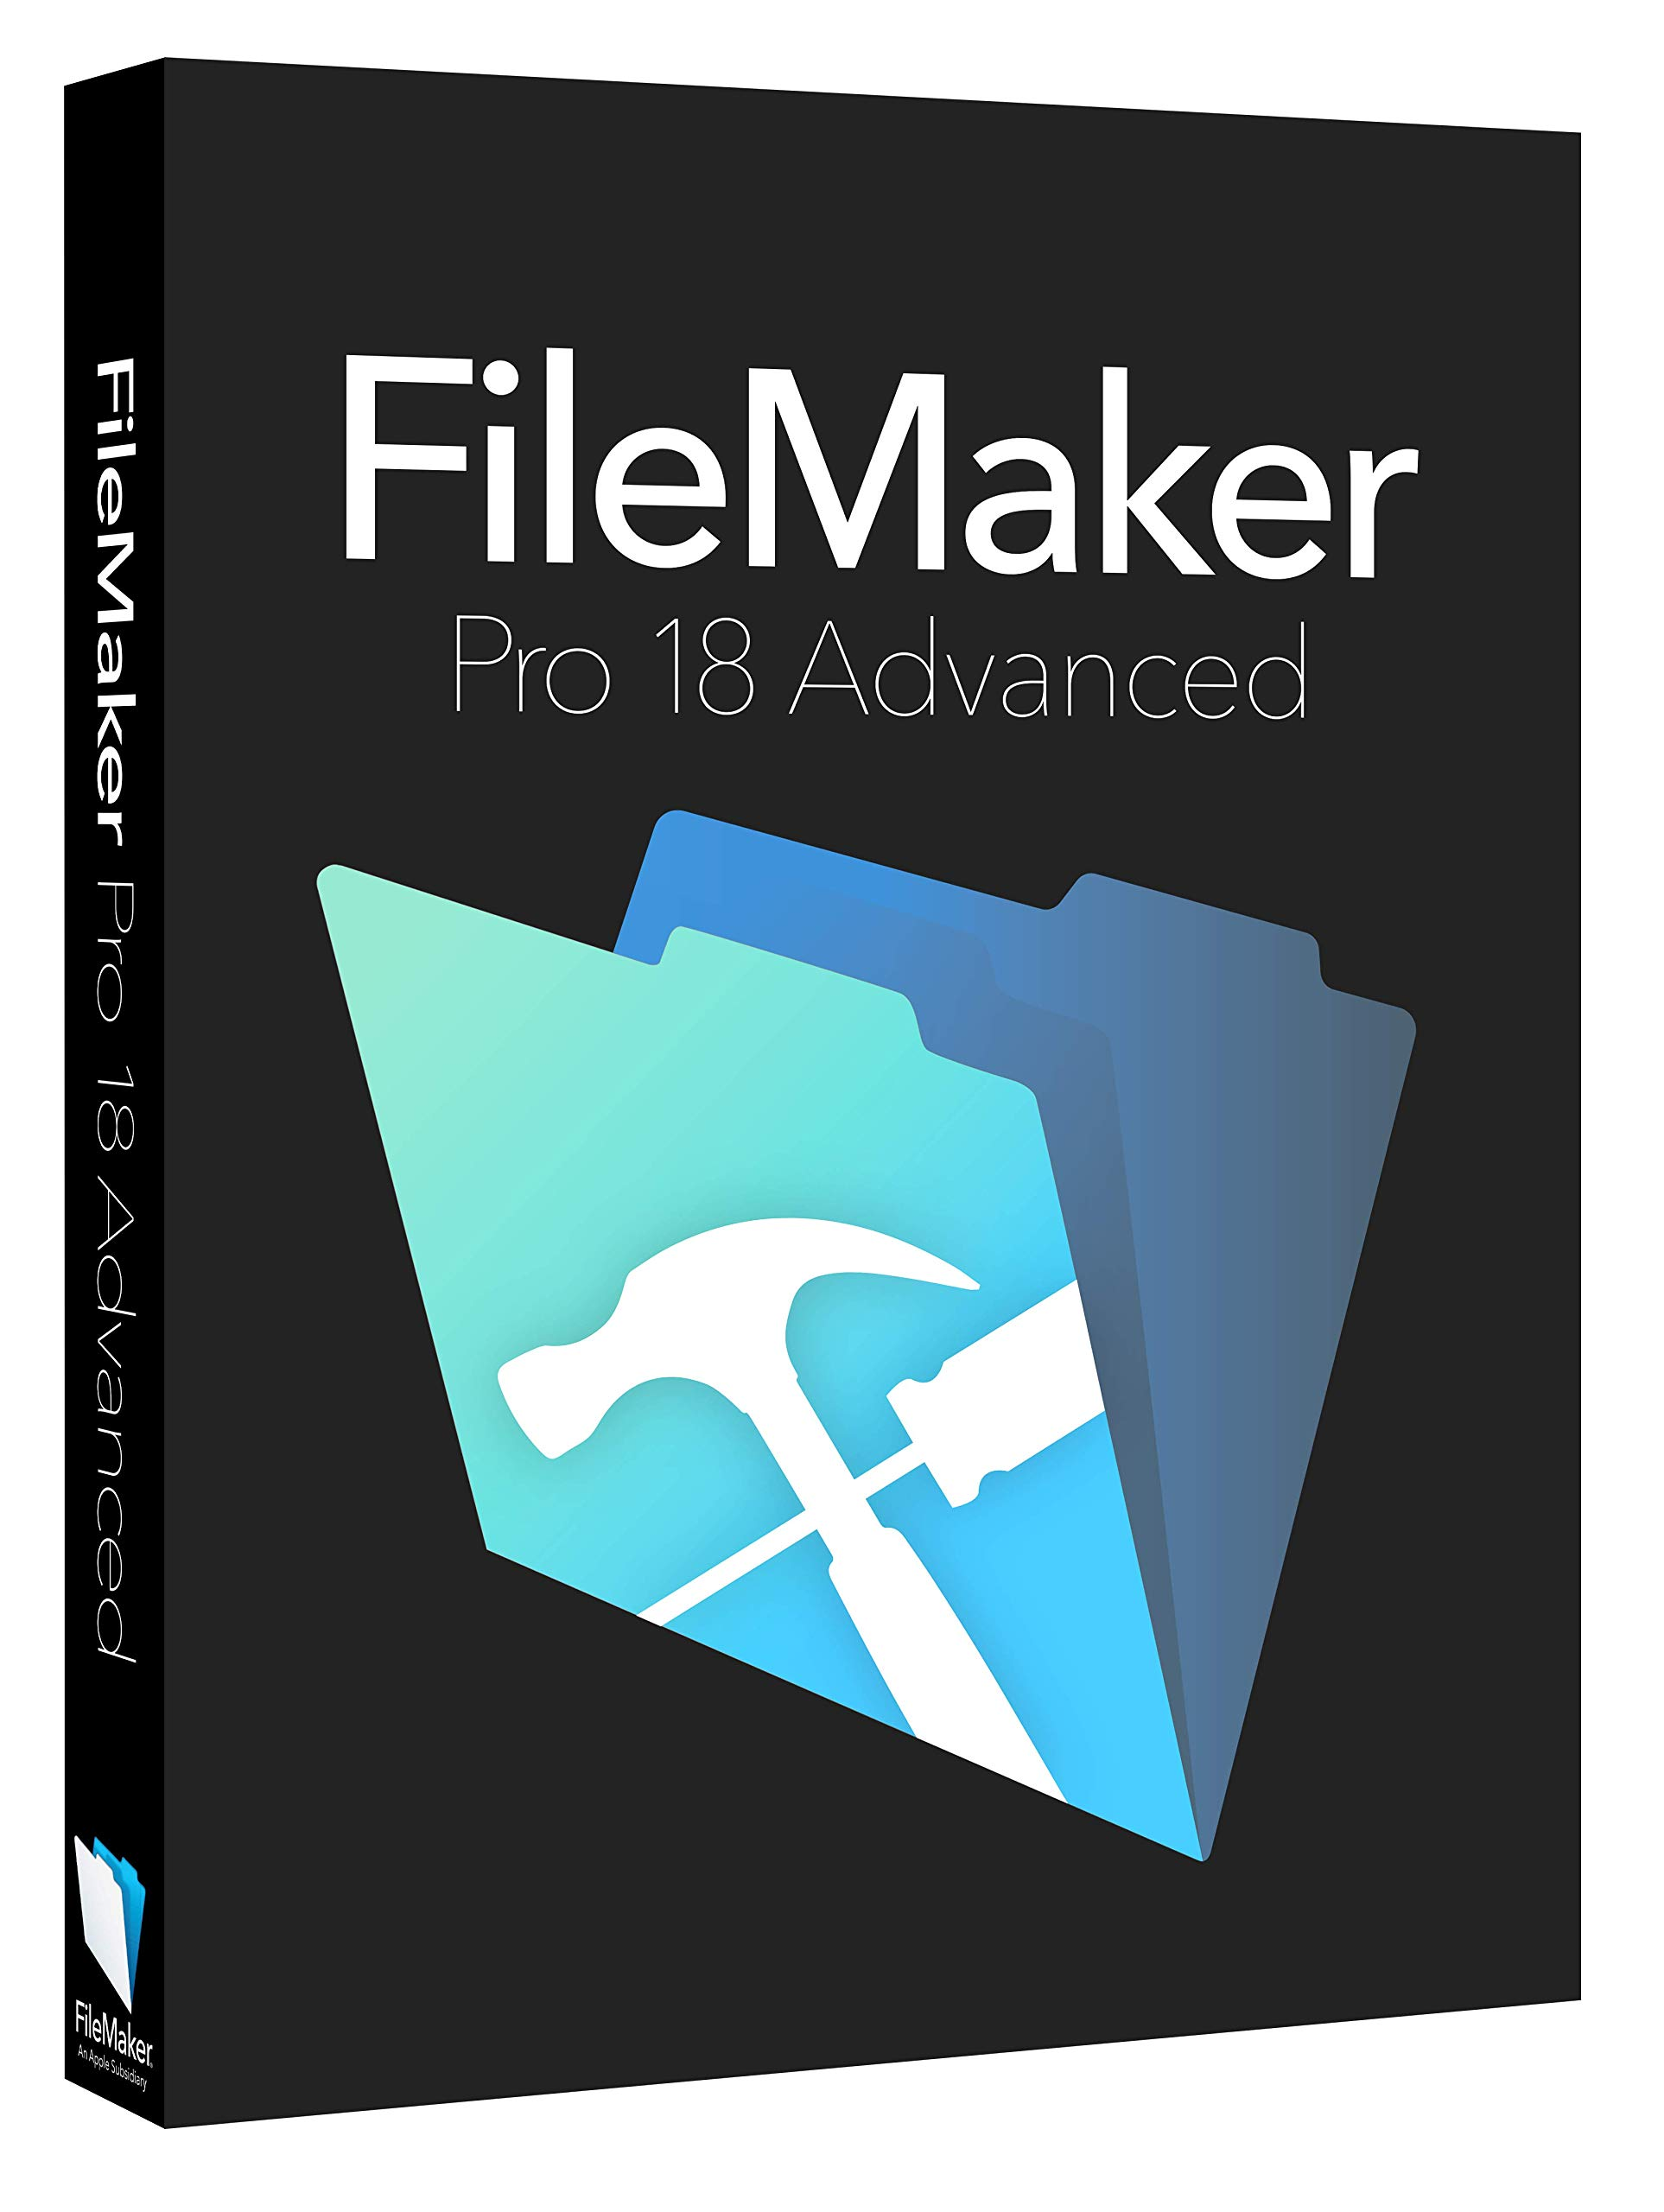 FileMaker Pro 18 Advanced Education ESD [PC/Mac Online Code] by FileMaker Inc.